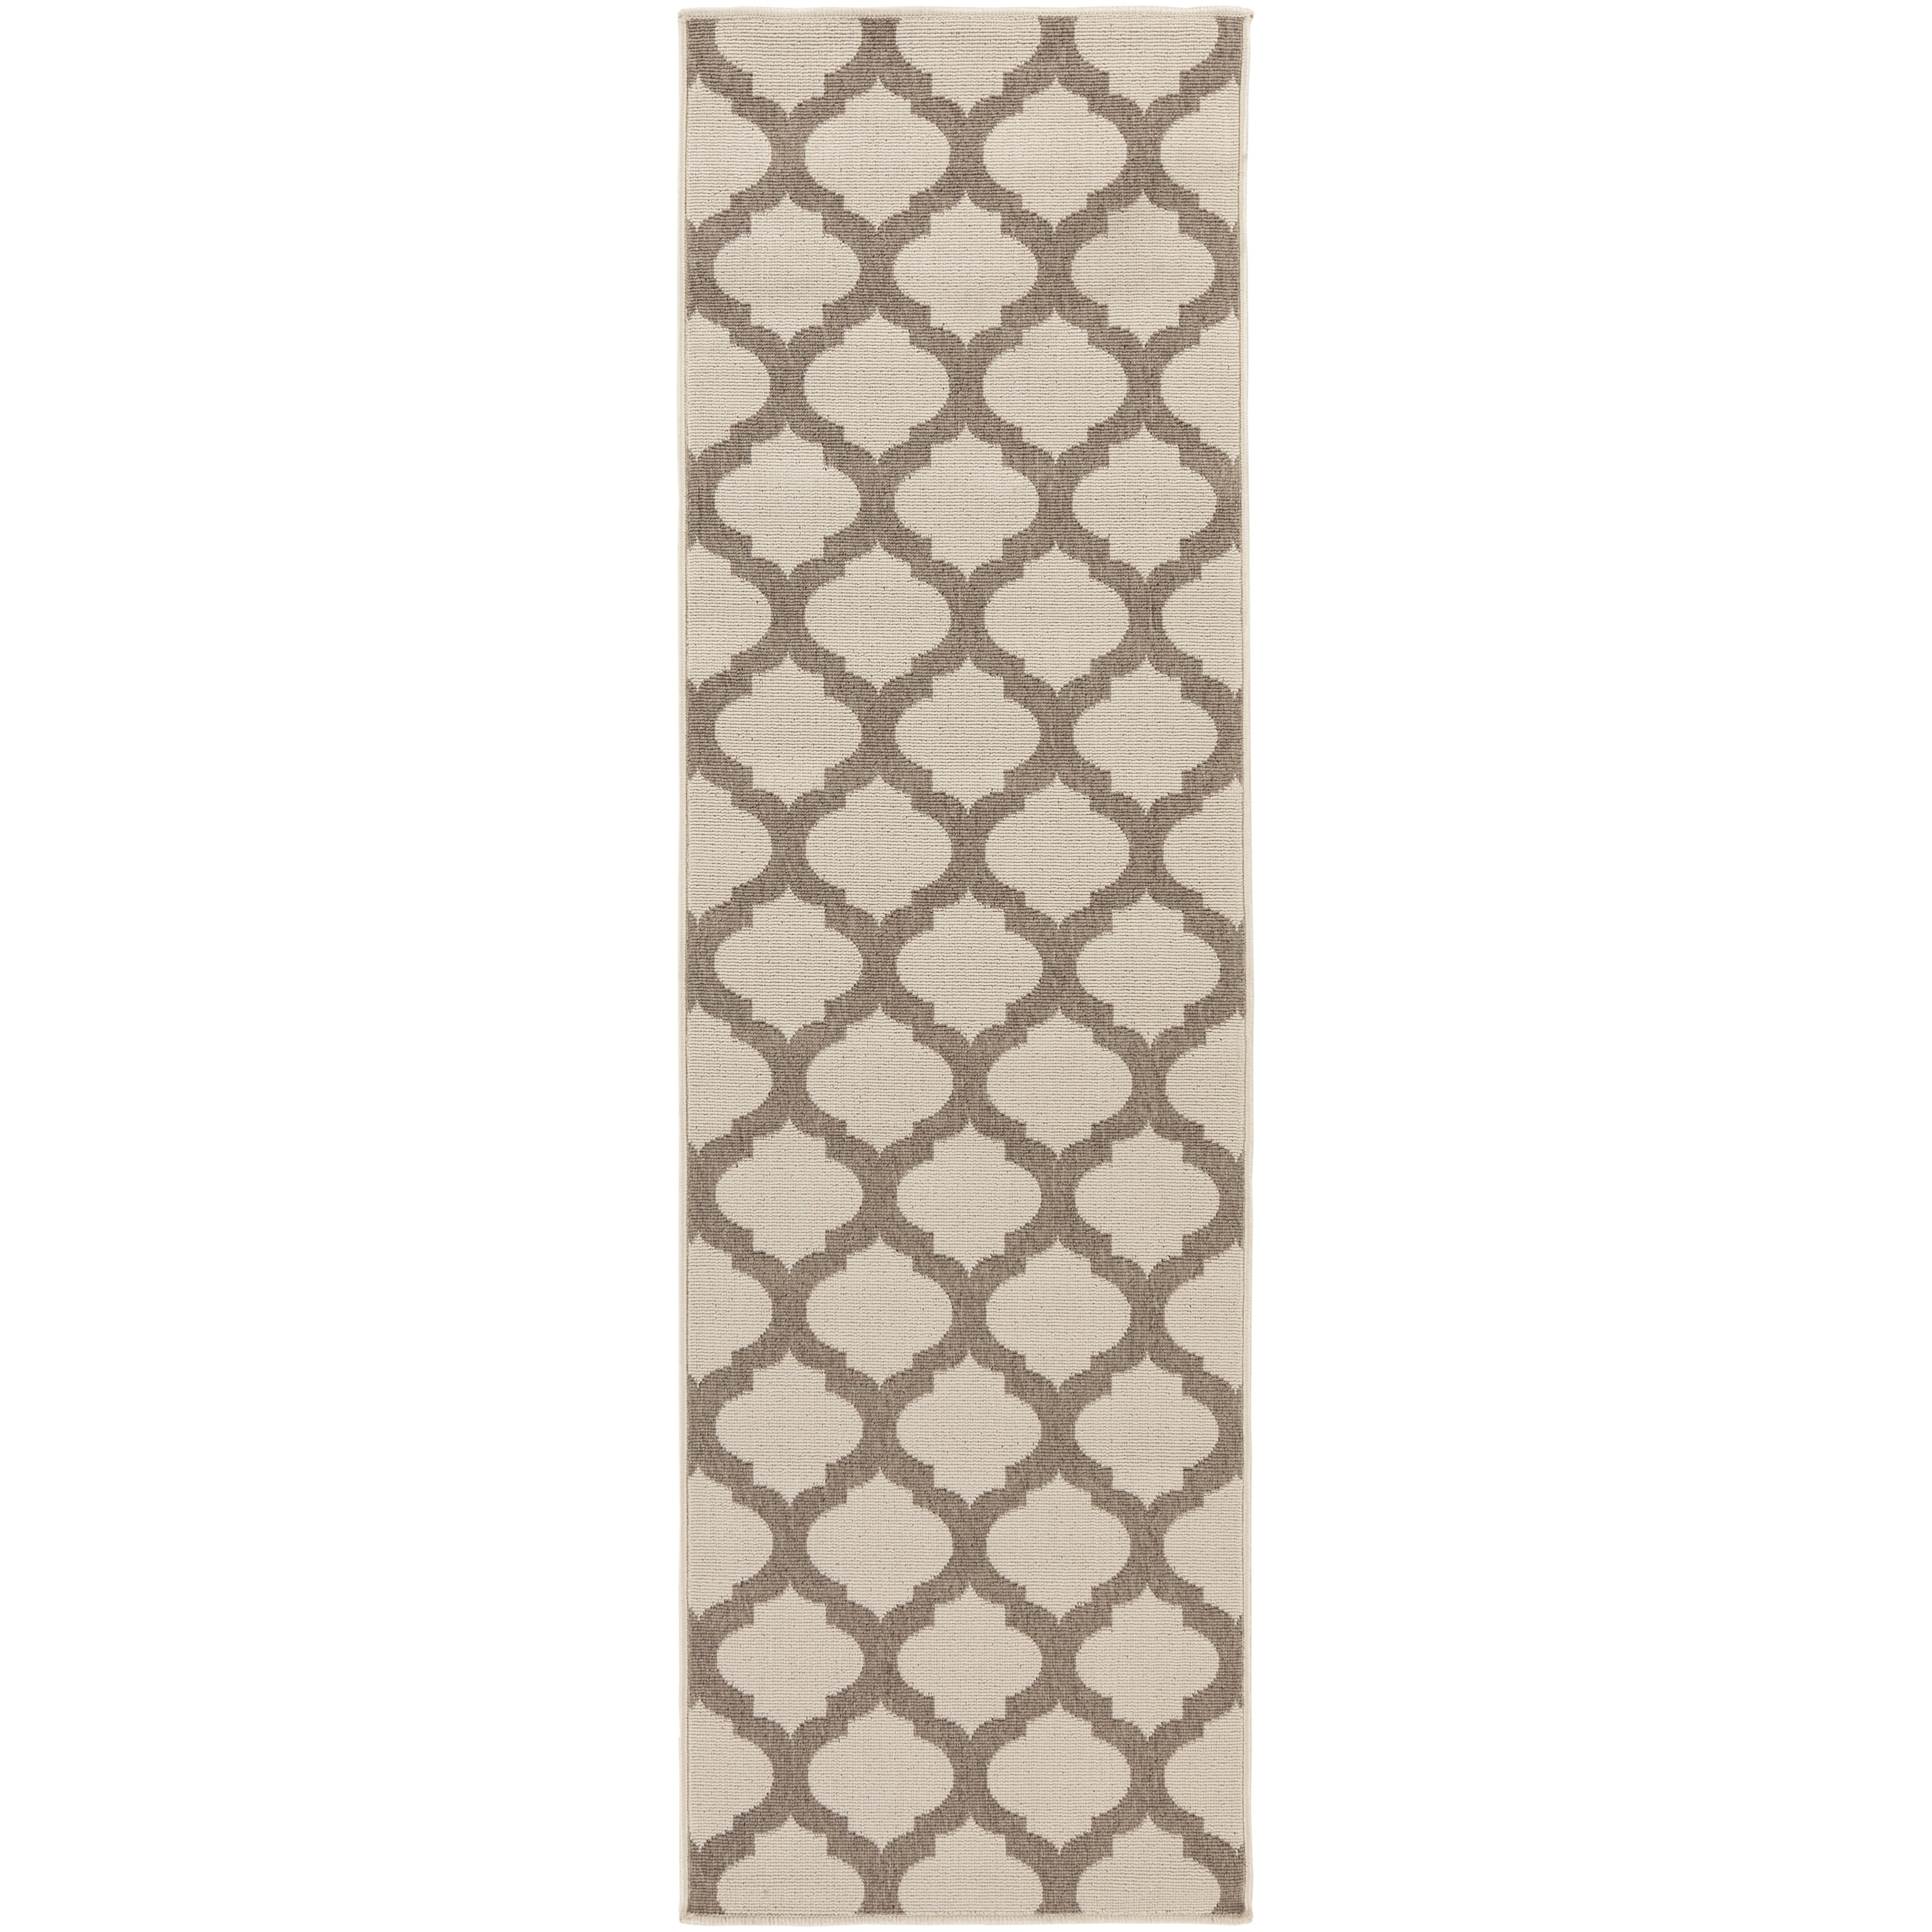 Christmas Tree Farms For Sale In Oregon: DwellStudio Alfresco Hand-Woven Beige / Taupe Outdoor Area